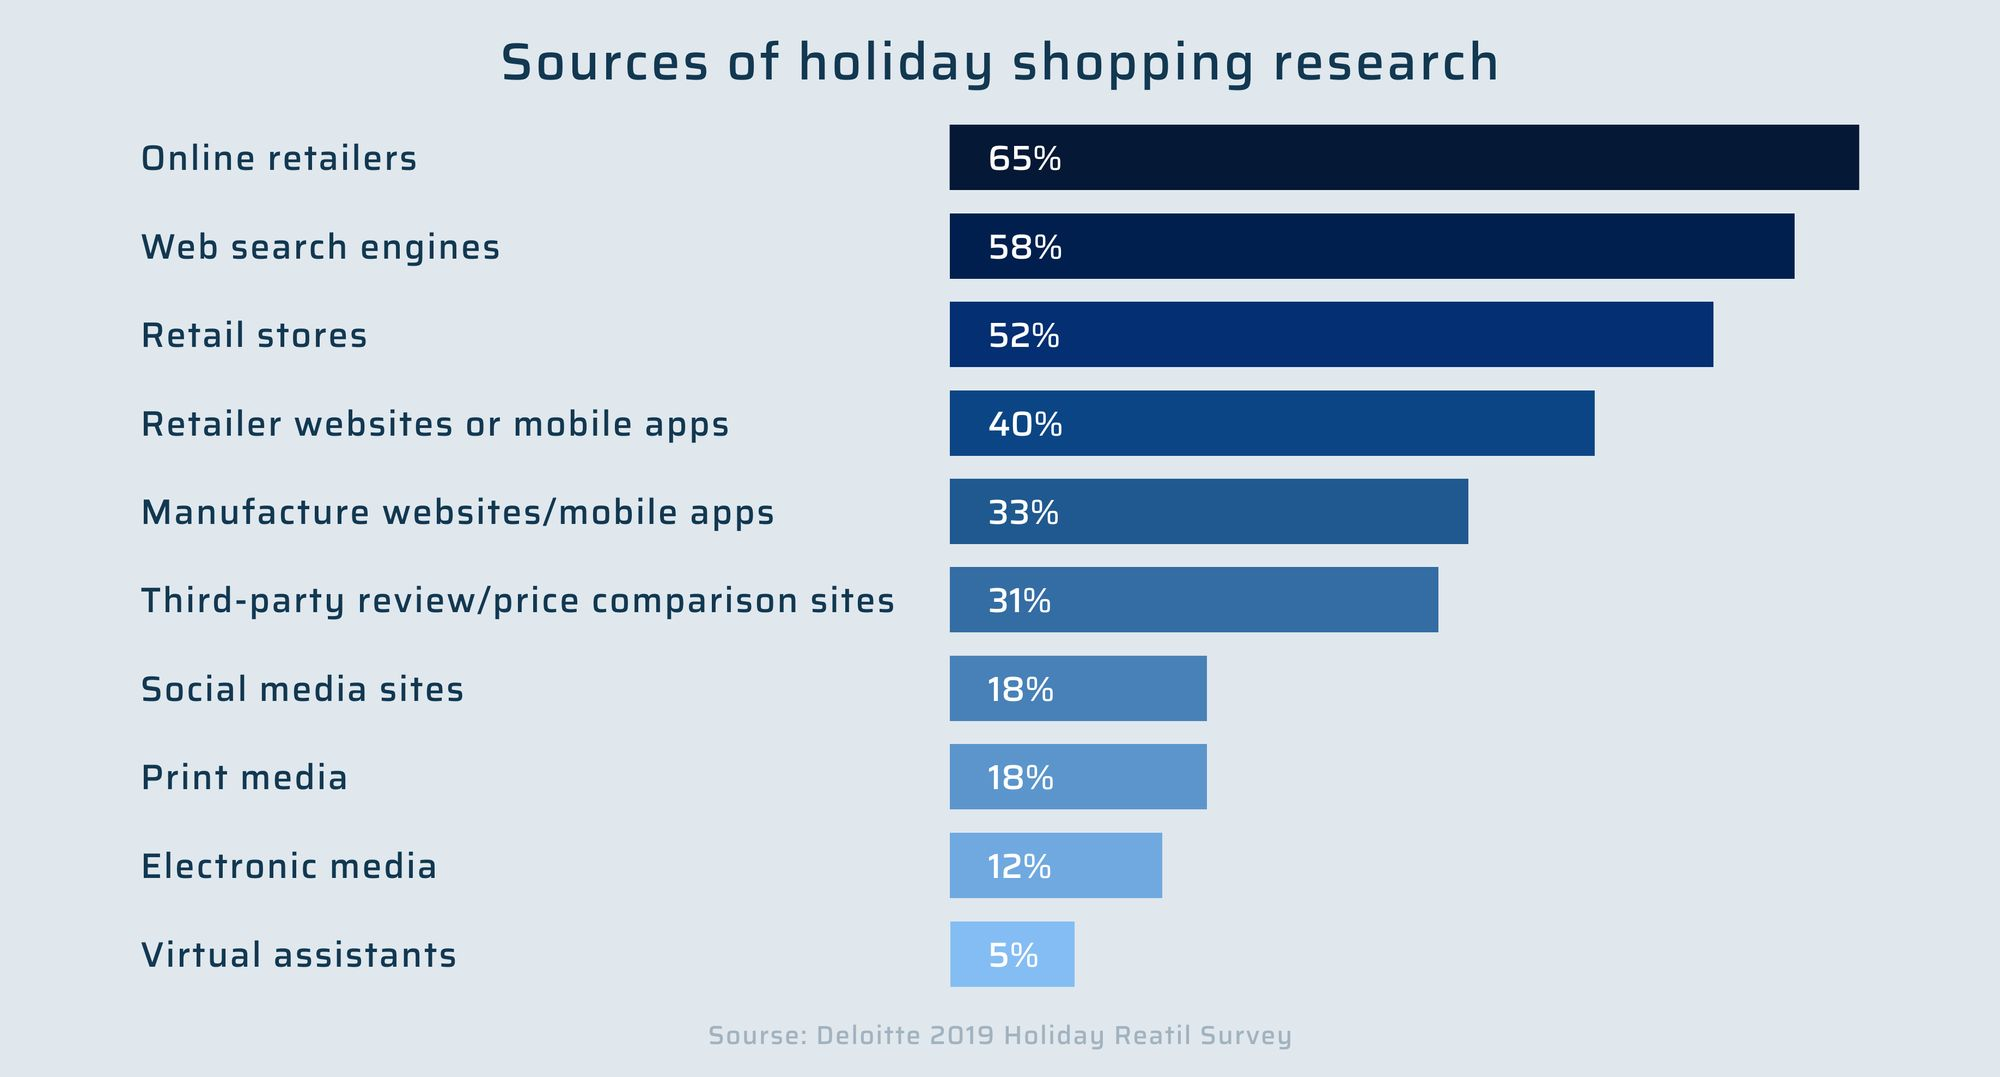 Sources of holiday shopping research. Deloitte 2019 Holiday Reatil Survey